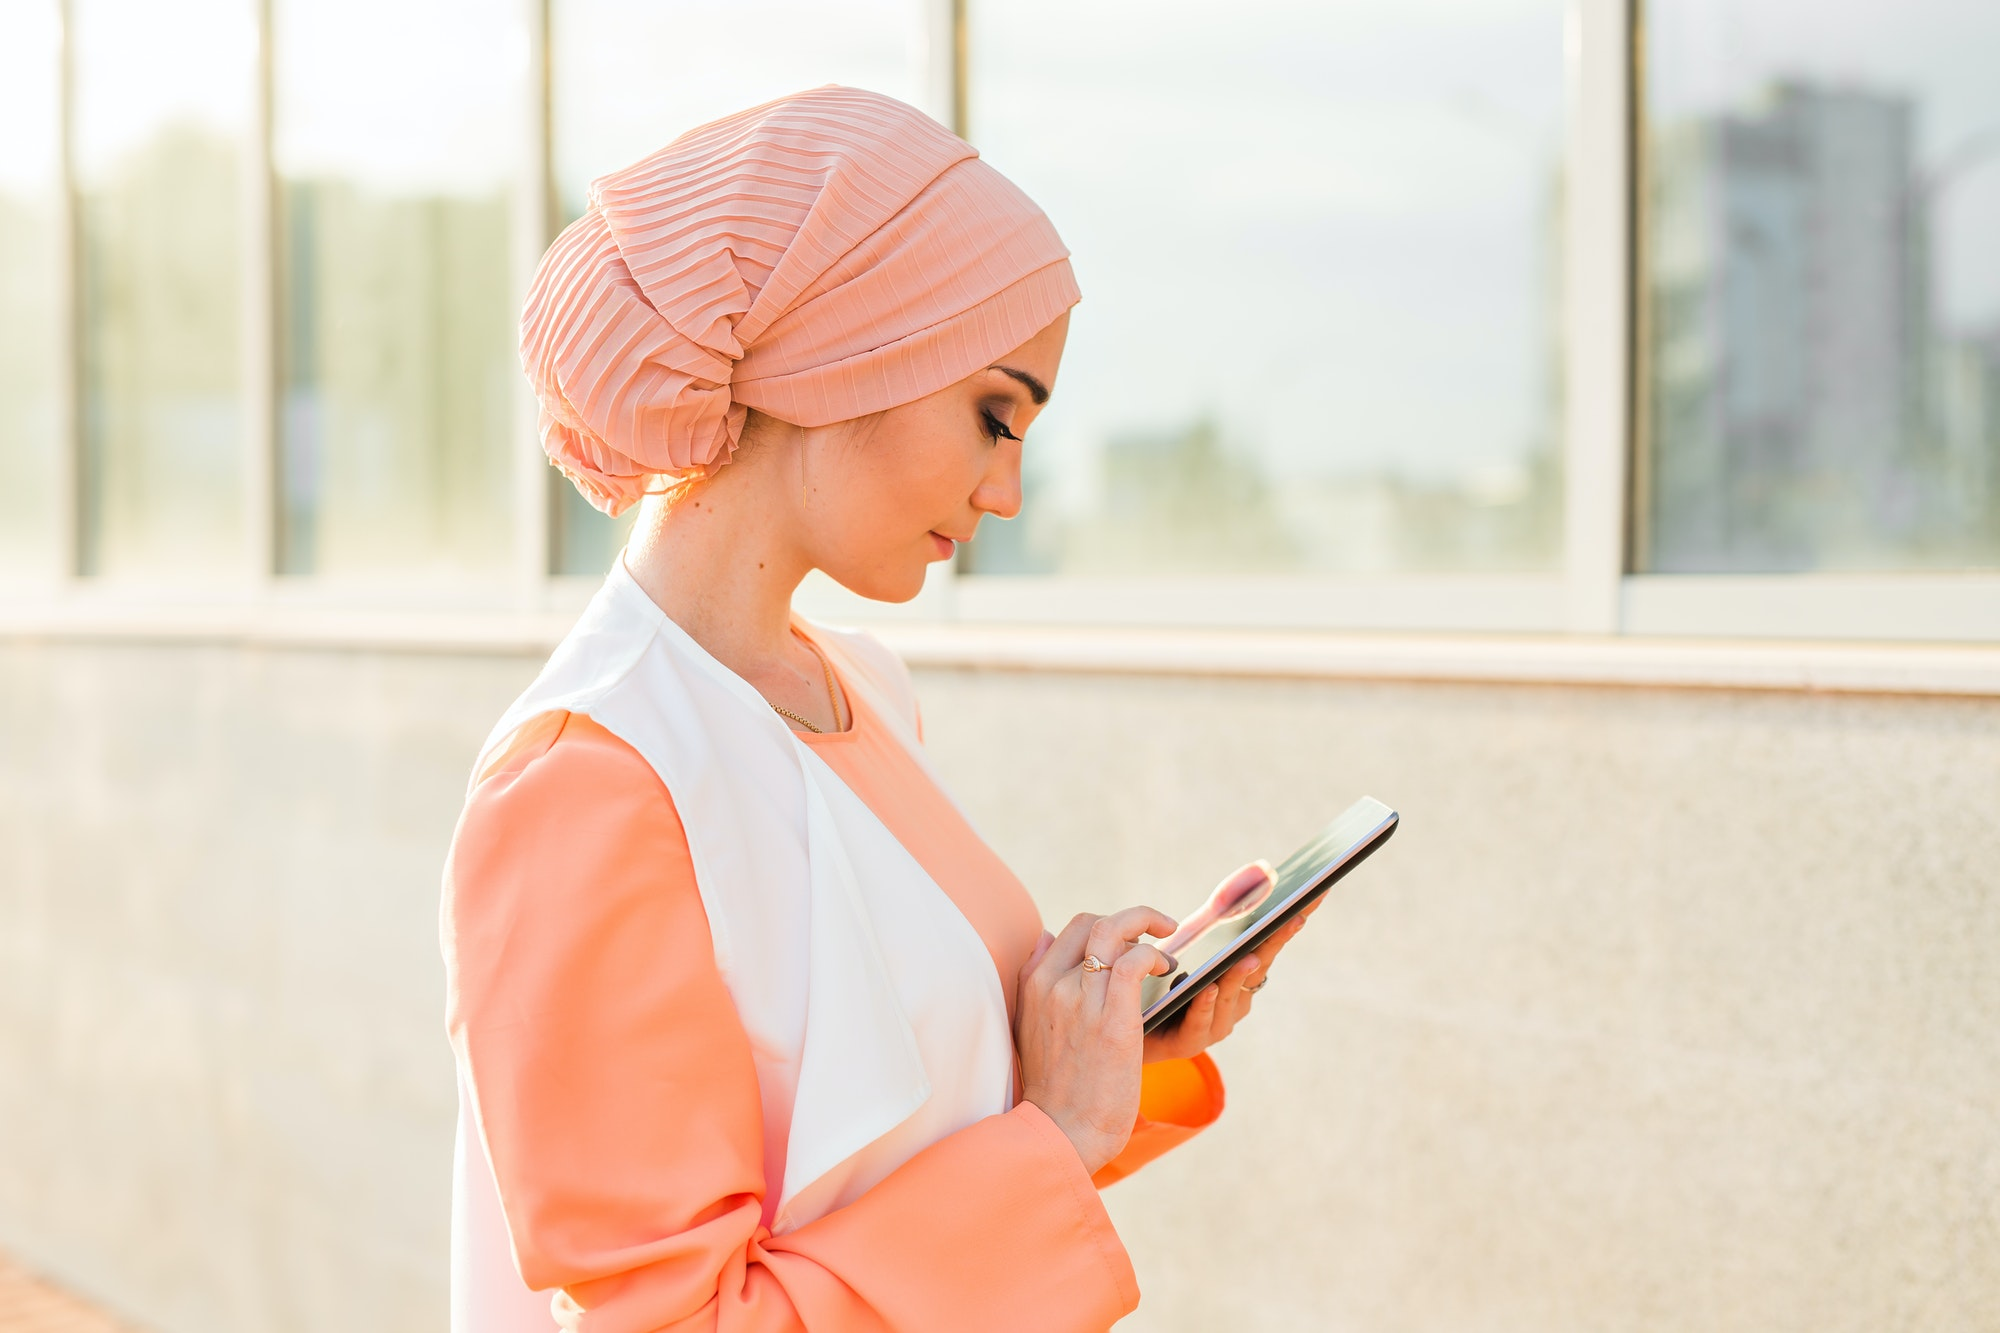 Portrait of Arab businesswoman holding a tablet. The woman is dressed in an abaya